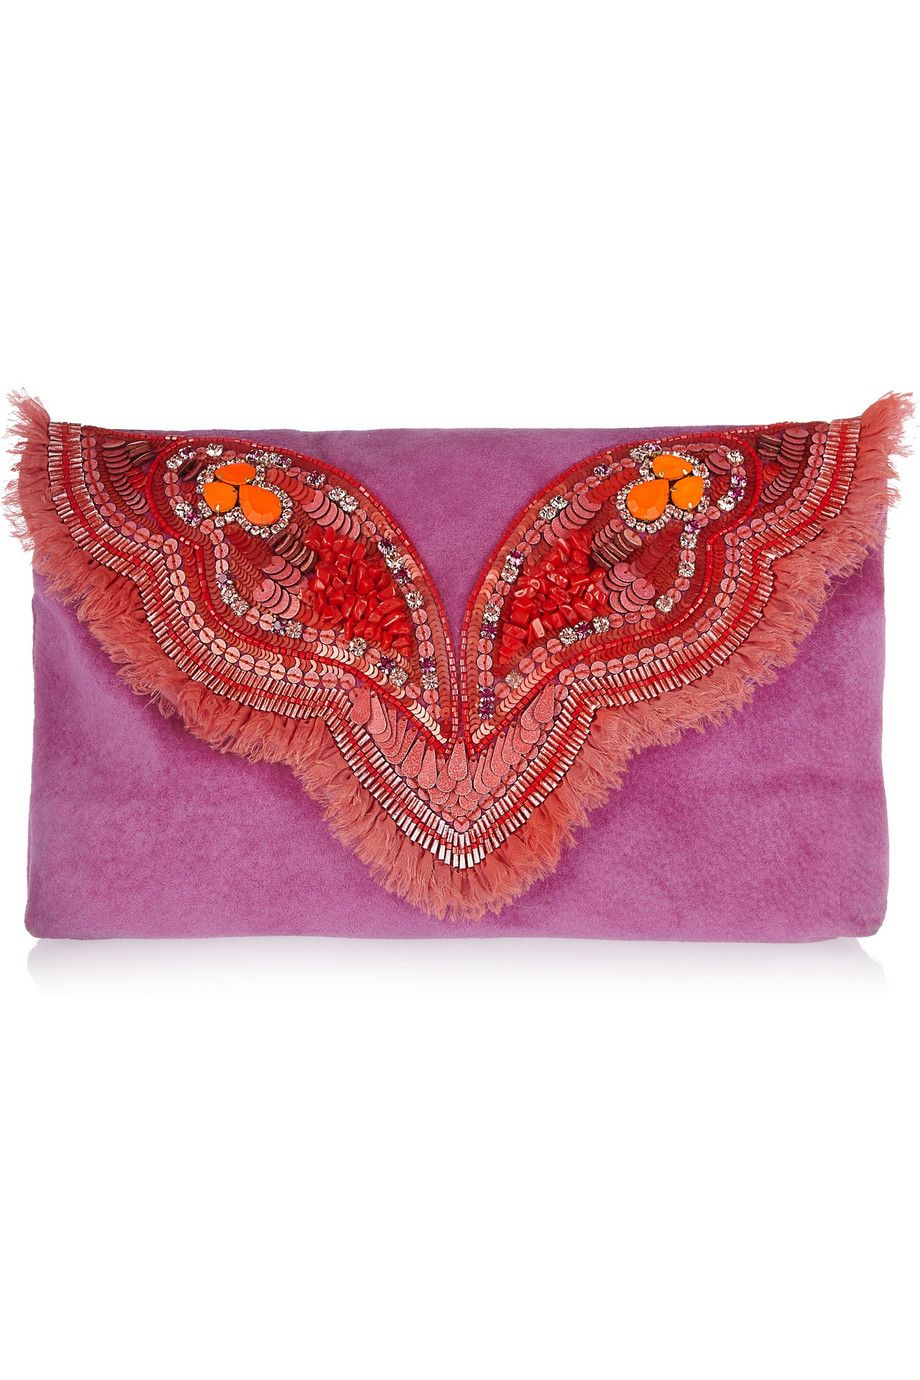 Matthew Williamson | Butterfly embellished suede clutch